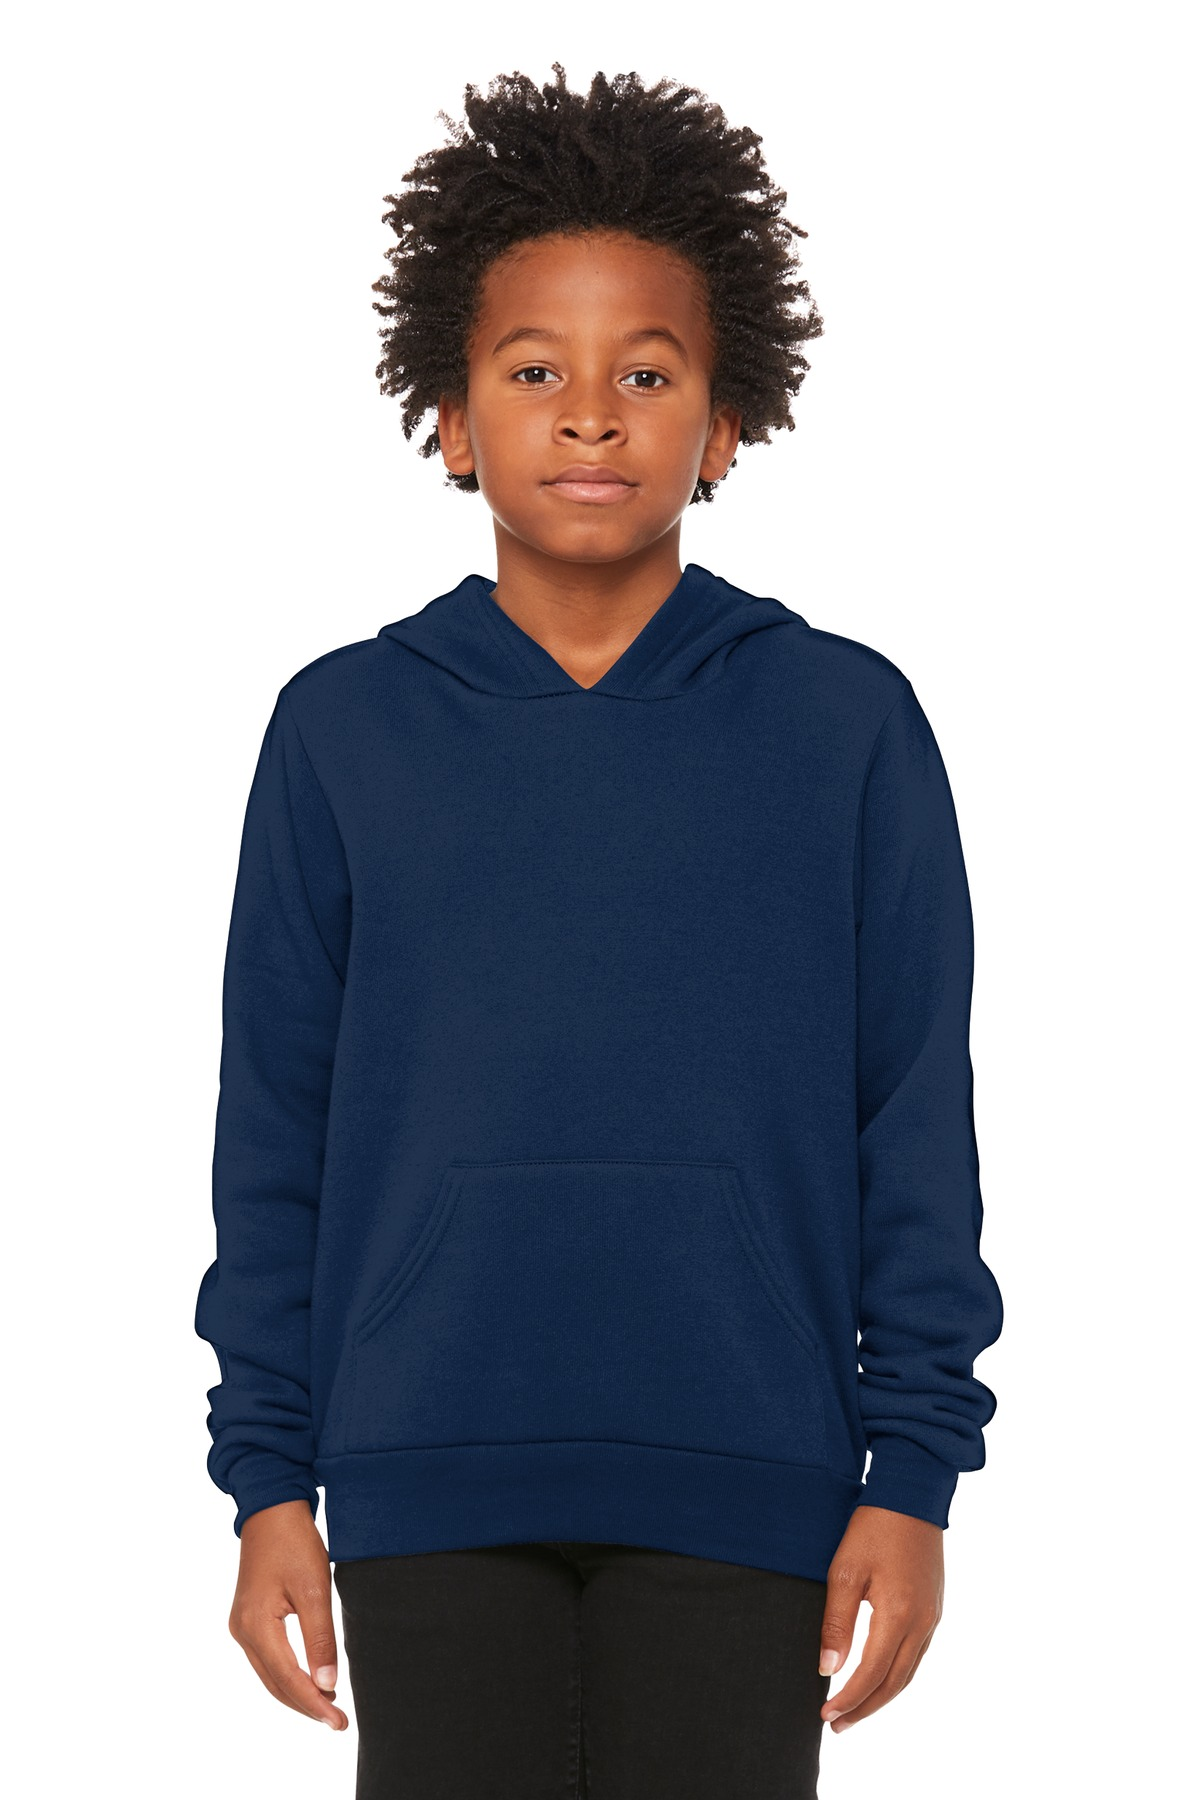 BELLA+CANVAS  ®  Youth Sponge Fleece Pullover Hoodie BC3719Y - Navy